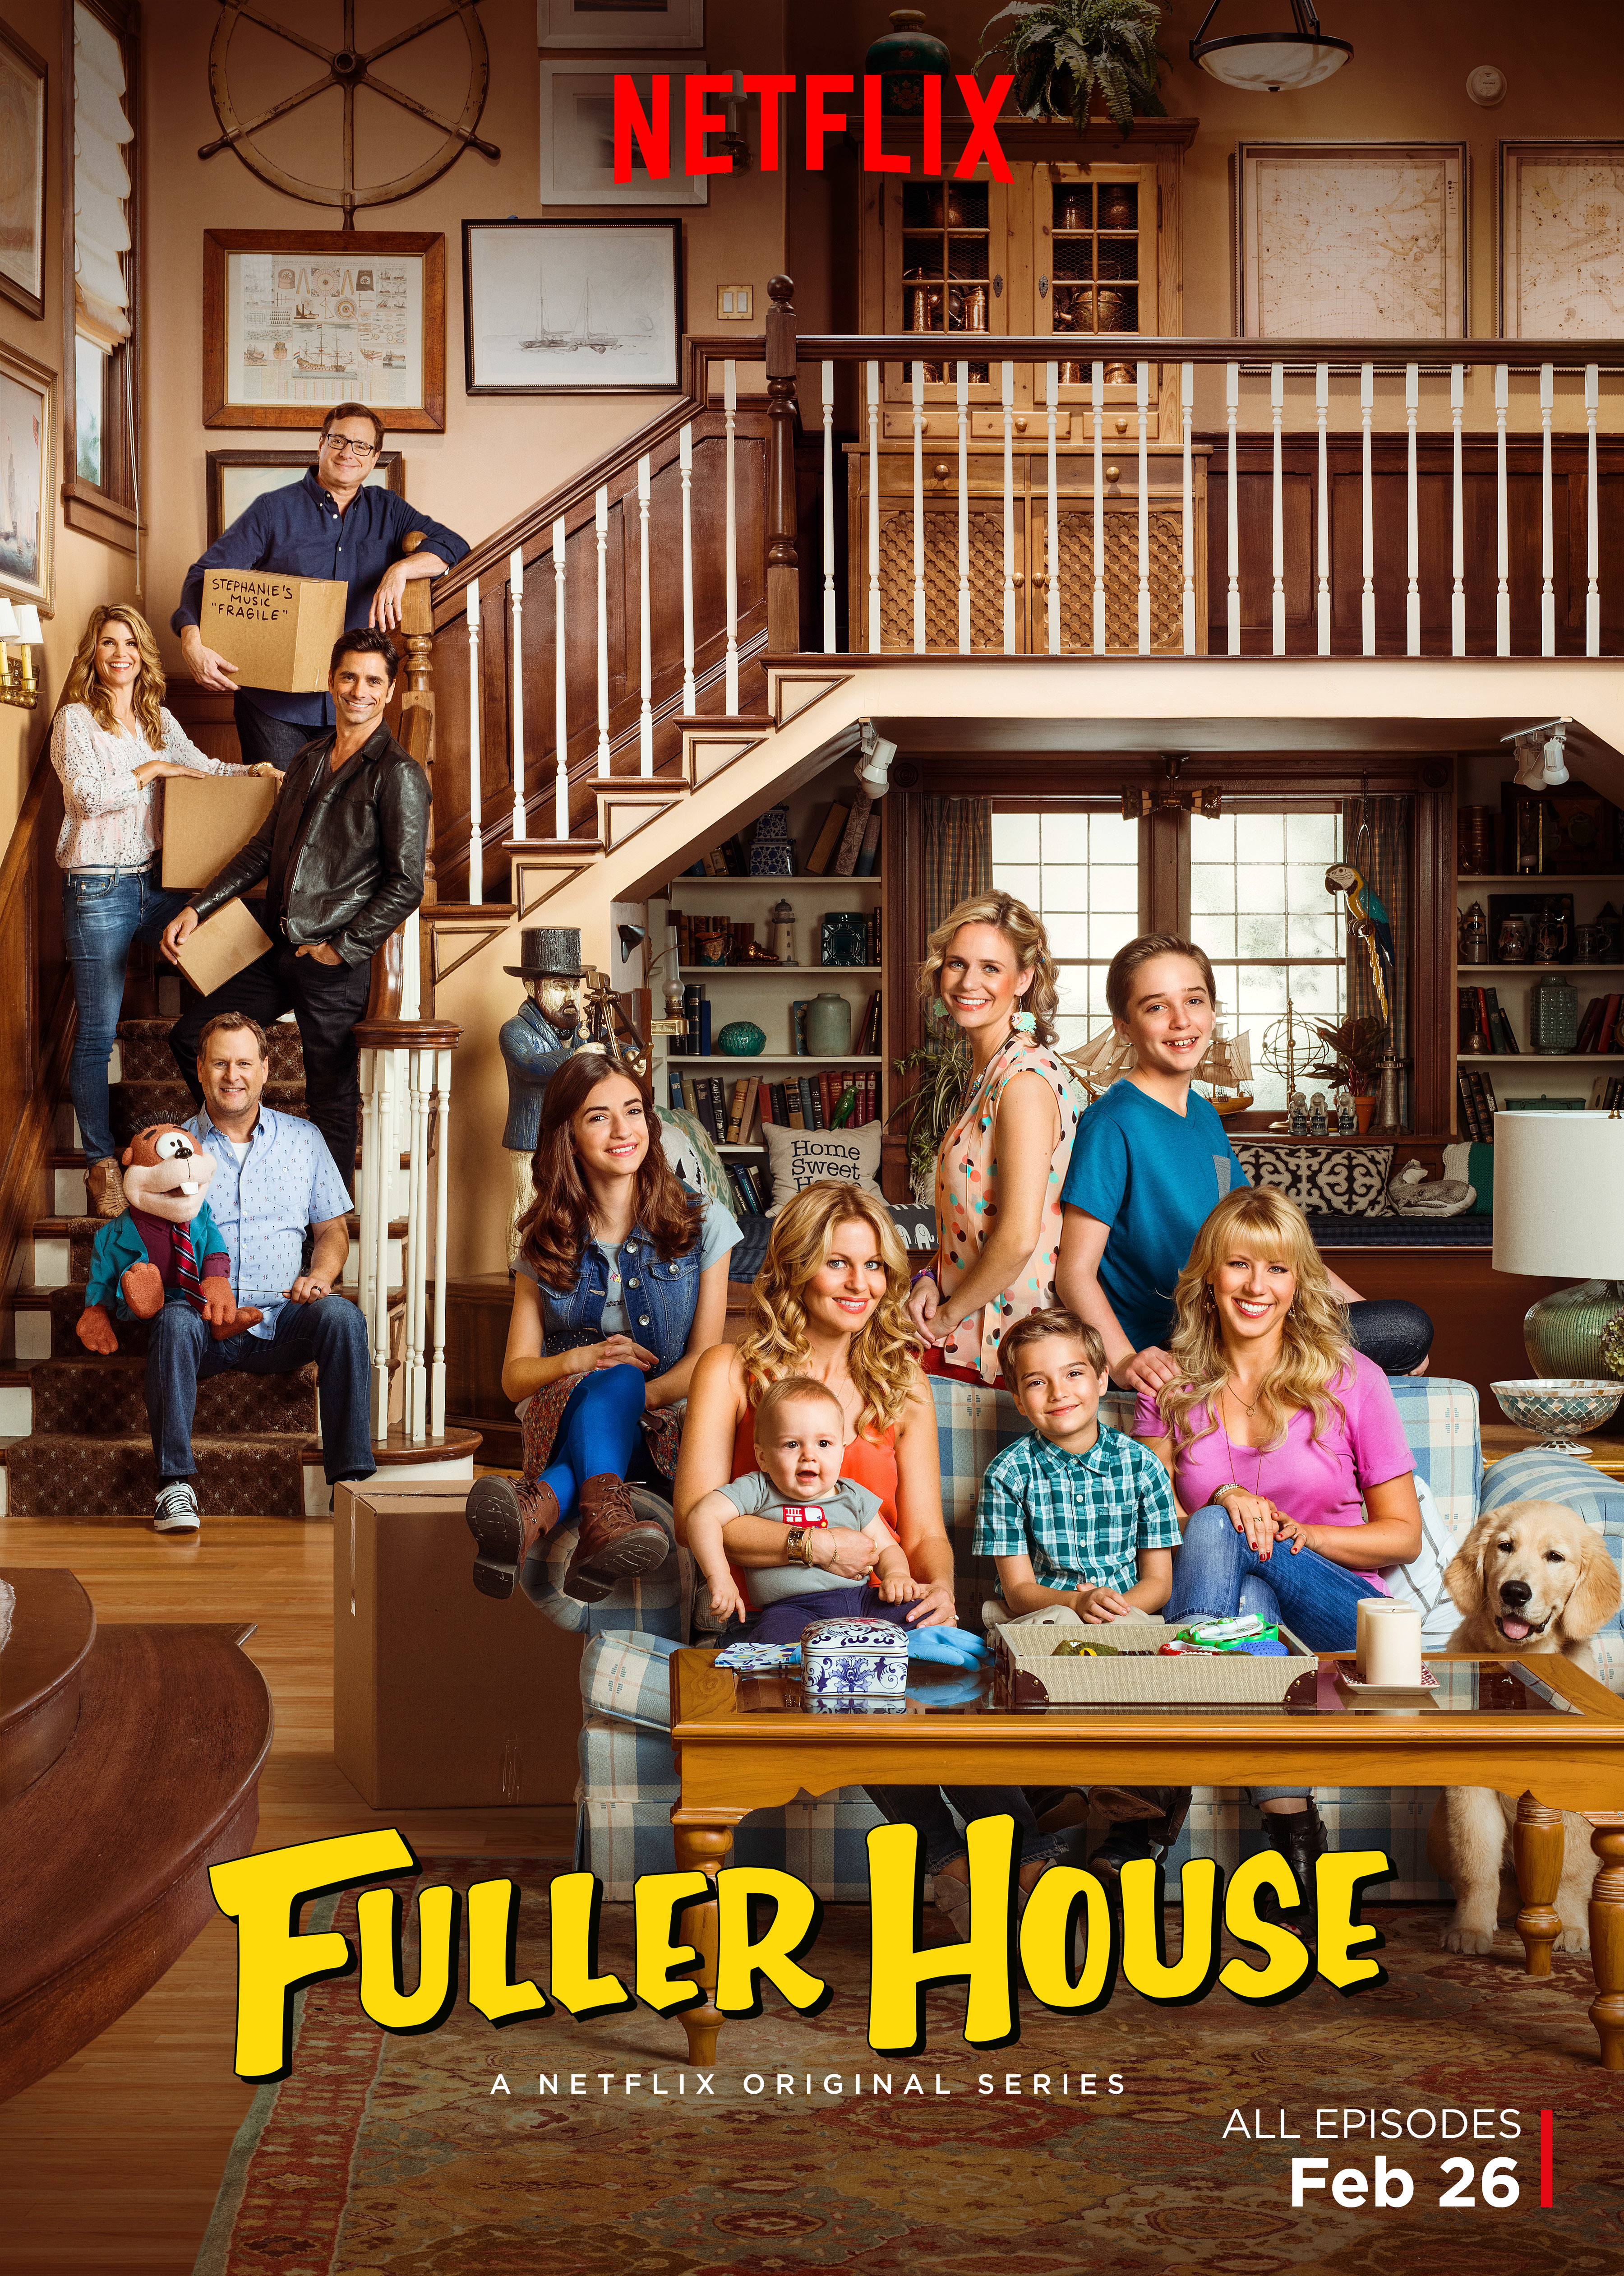 Candace Cameron Bure on 'Fuller House,' which debuts on Feb. 26, 2016: